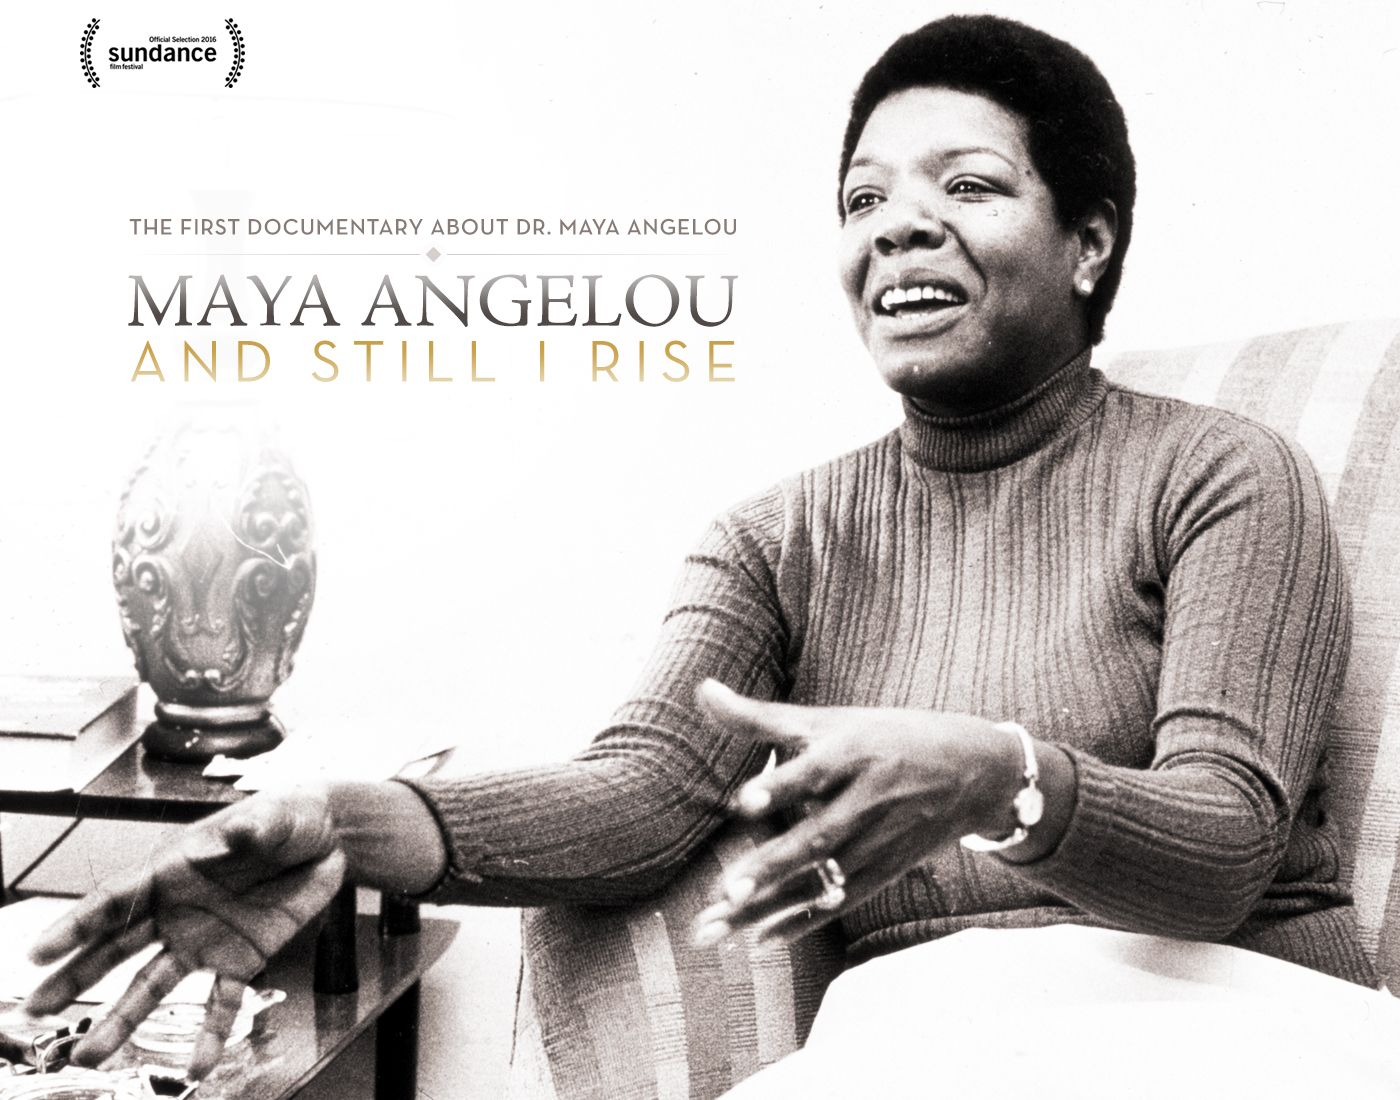 still i rise by maya angelou Still i rise - by maya angelouyou may write me down in history br with your bitter, twisted lies, br you may tread me in the very dirt br but still, like.